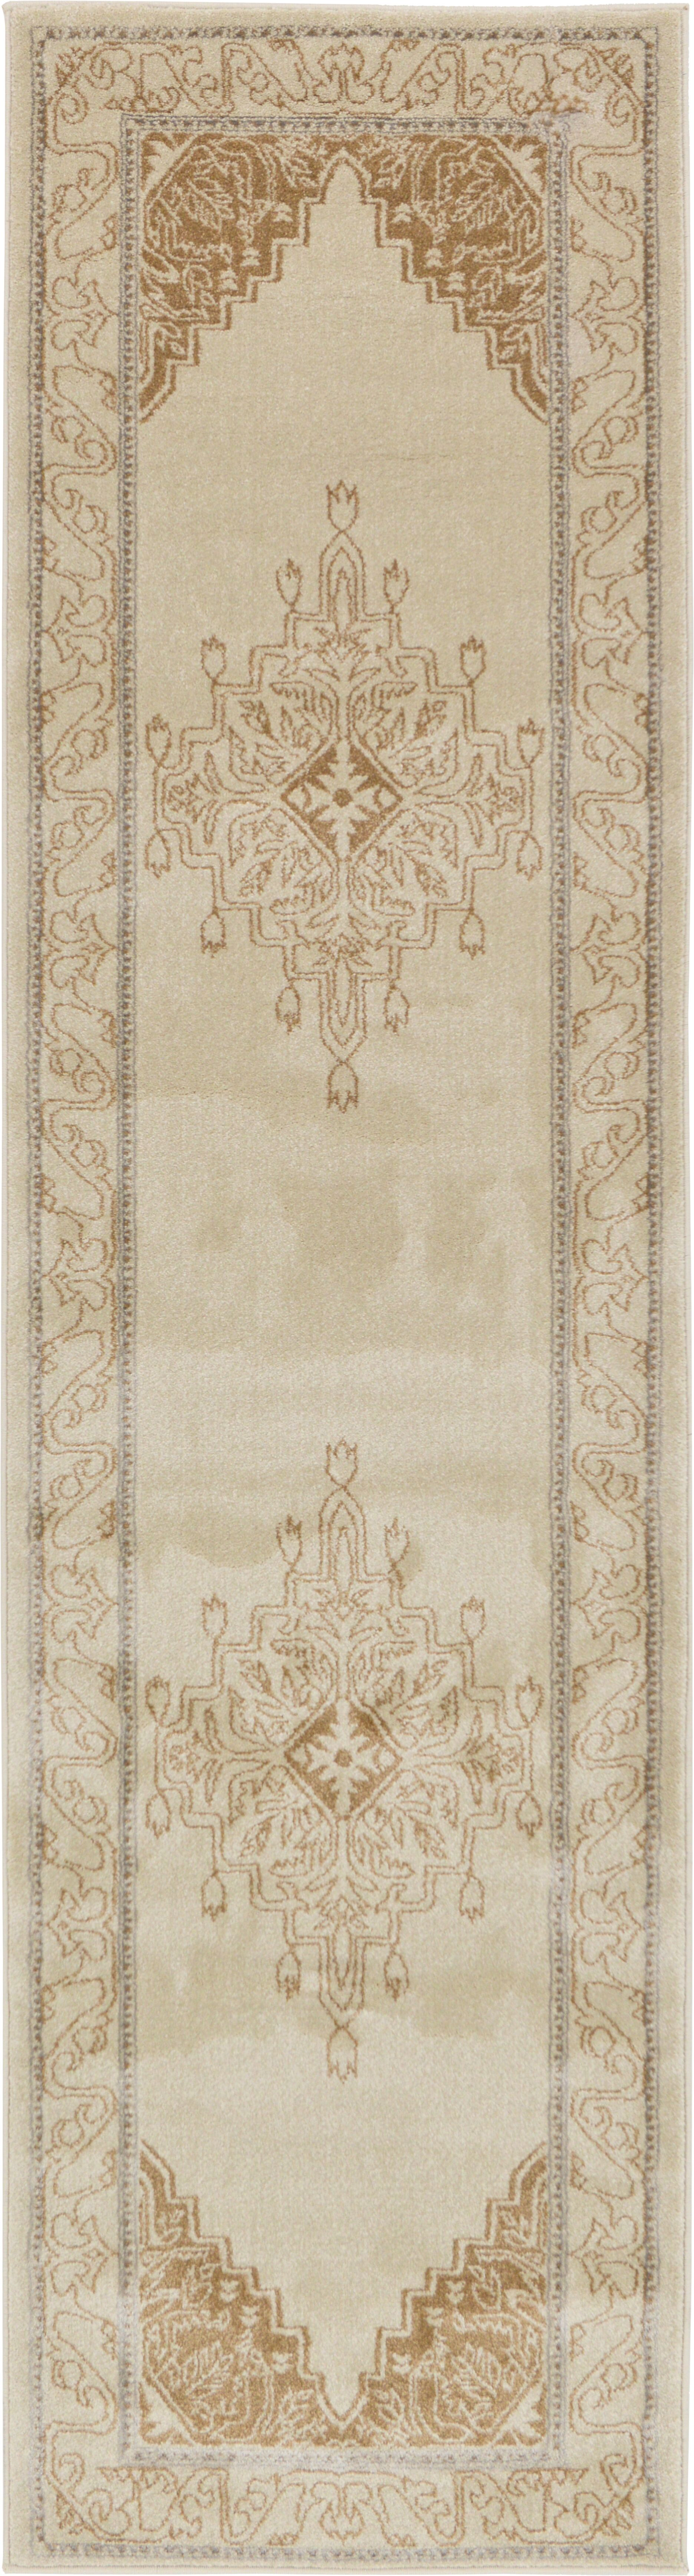 Cadencia Brown Area Rug Rug Size: Runner 2'7